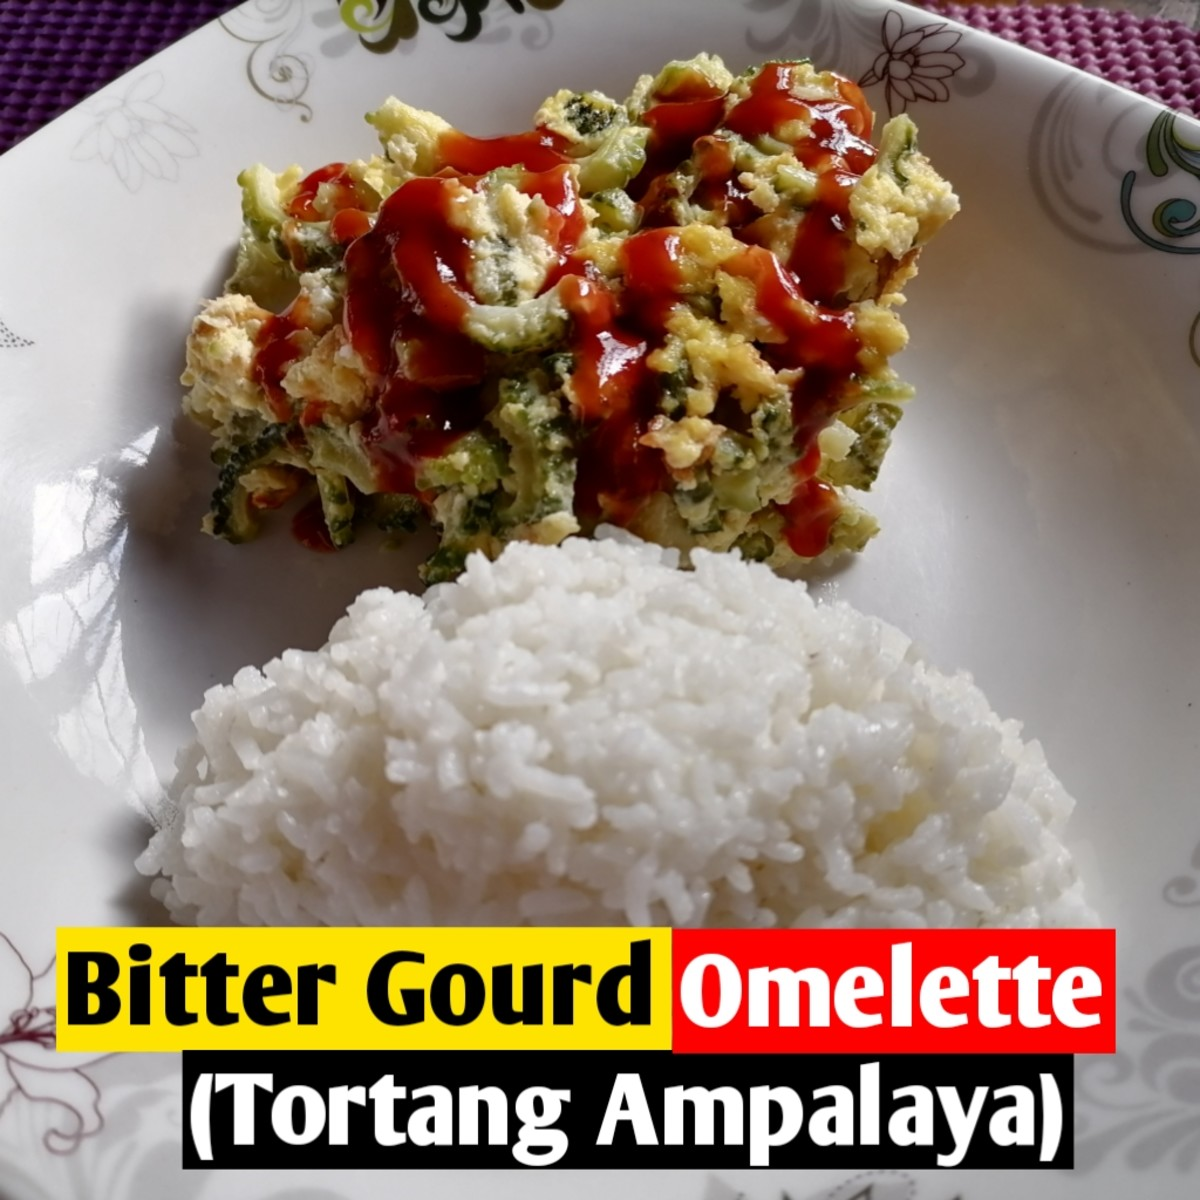 Learn how to prepare bitter gourd omelette